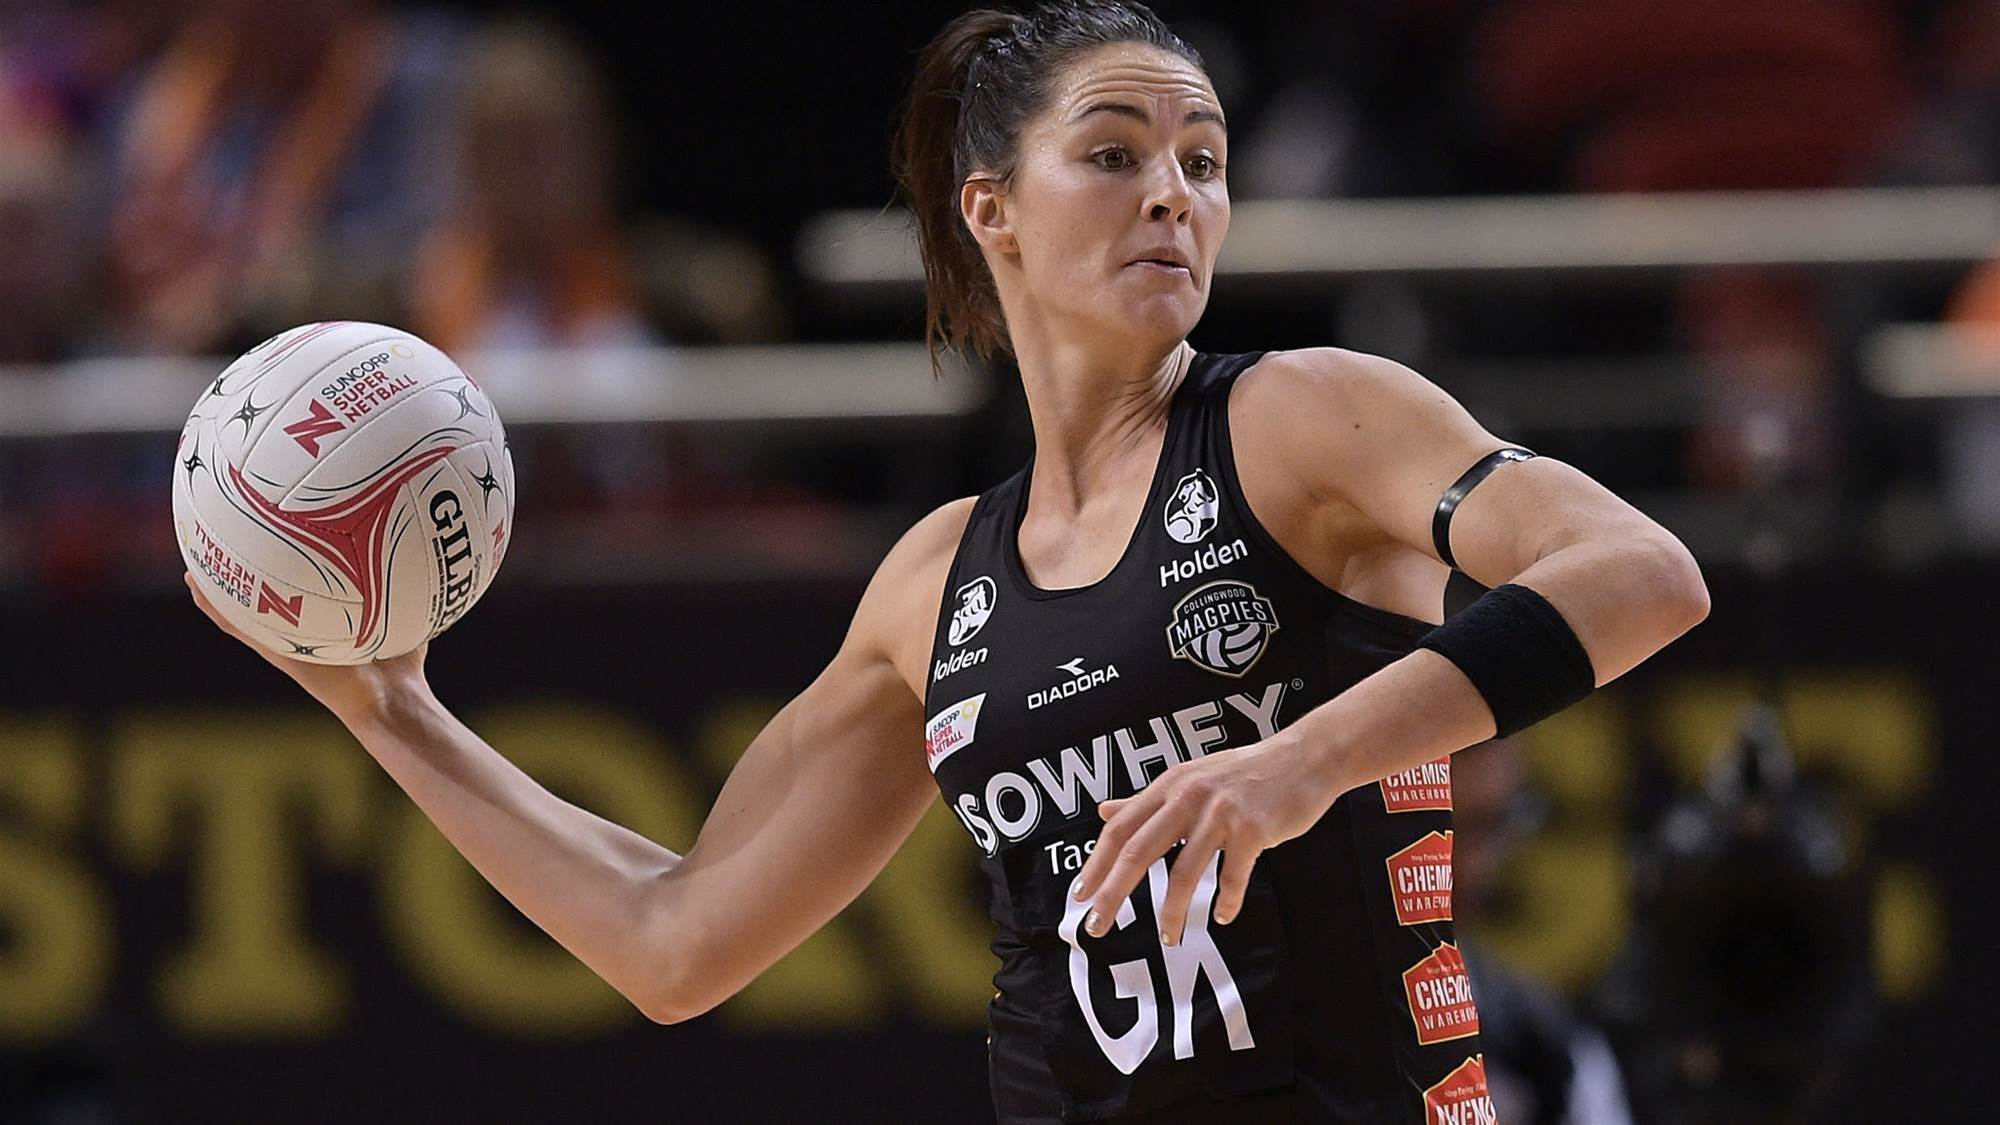 Sharni Layton announces retirement